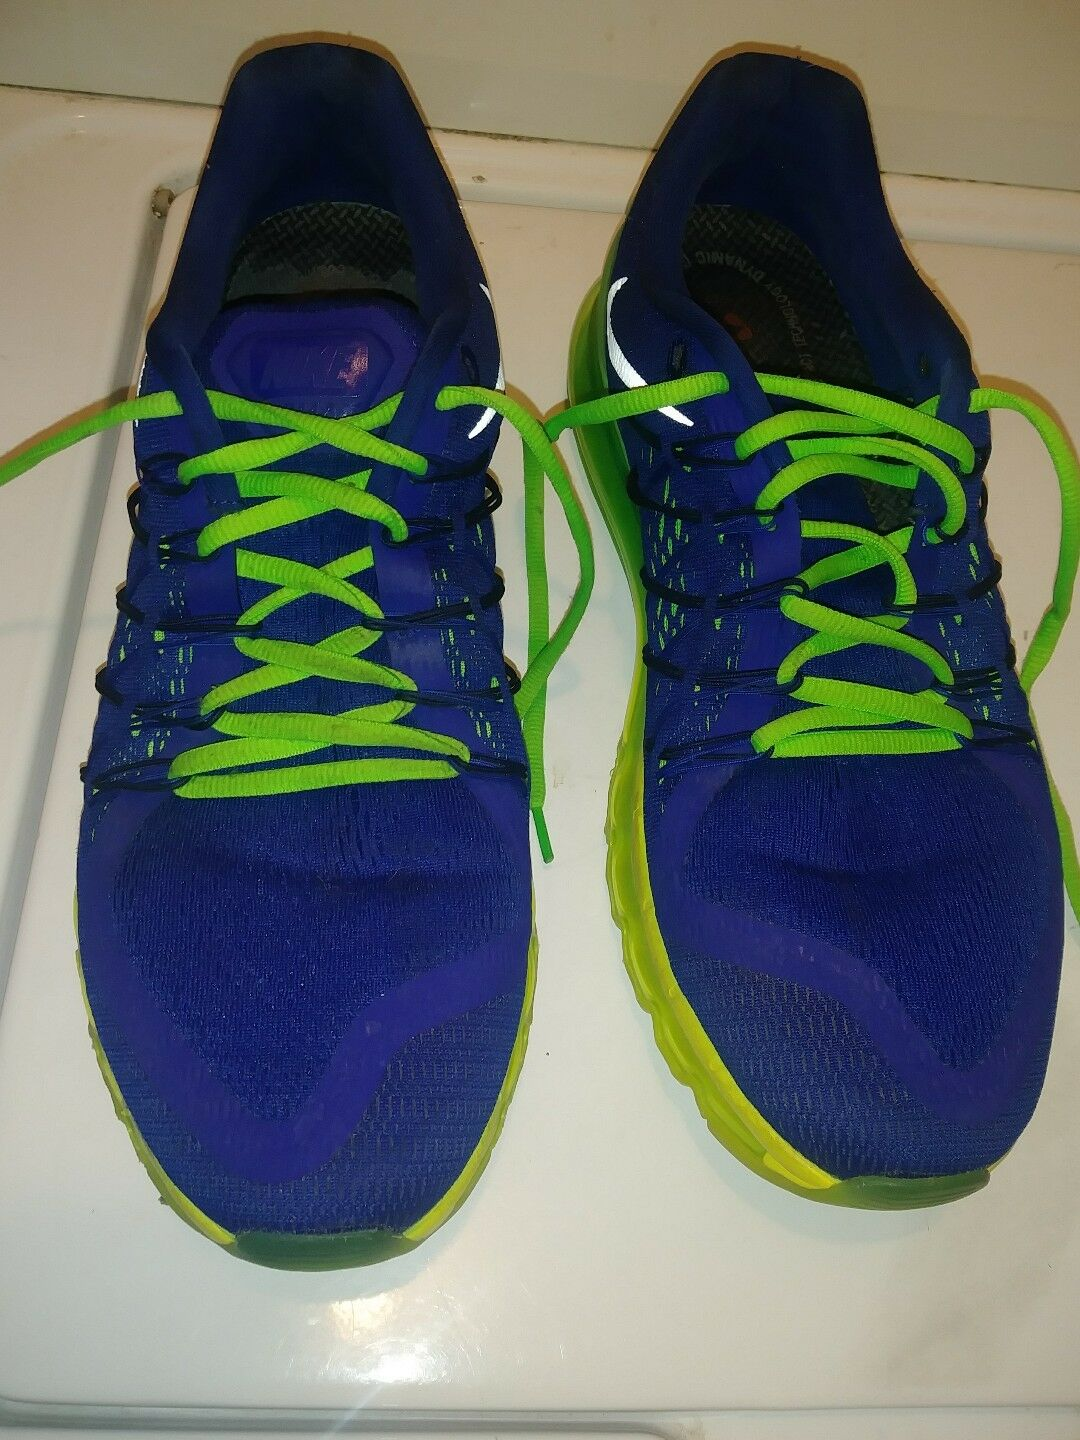 NIKE AIR MAX Men's blueeishPurple Green Athletic Sneakers shoes Size 12. Excellent